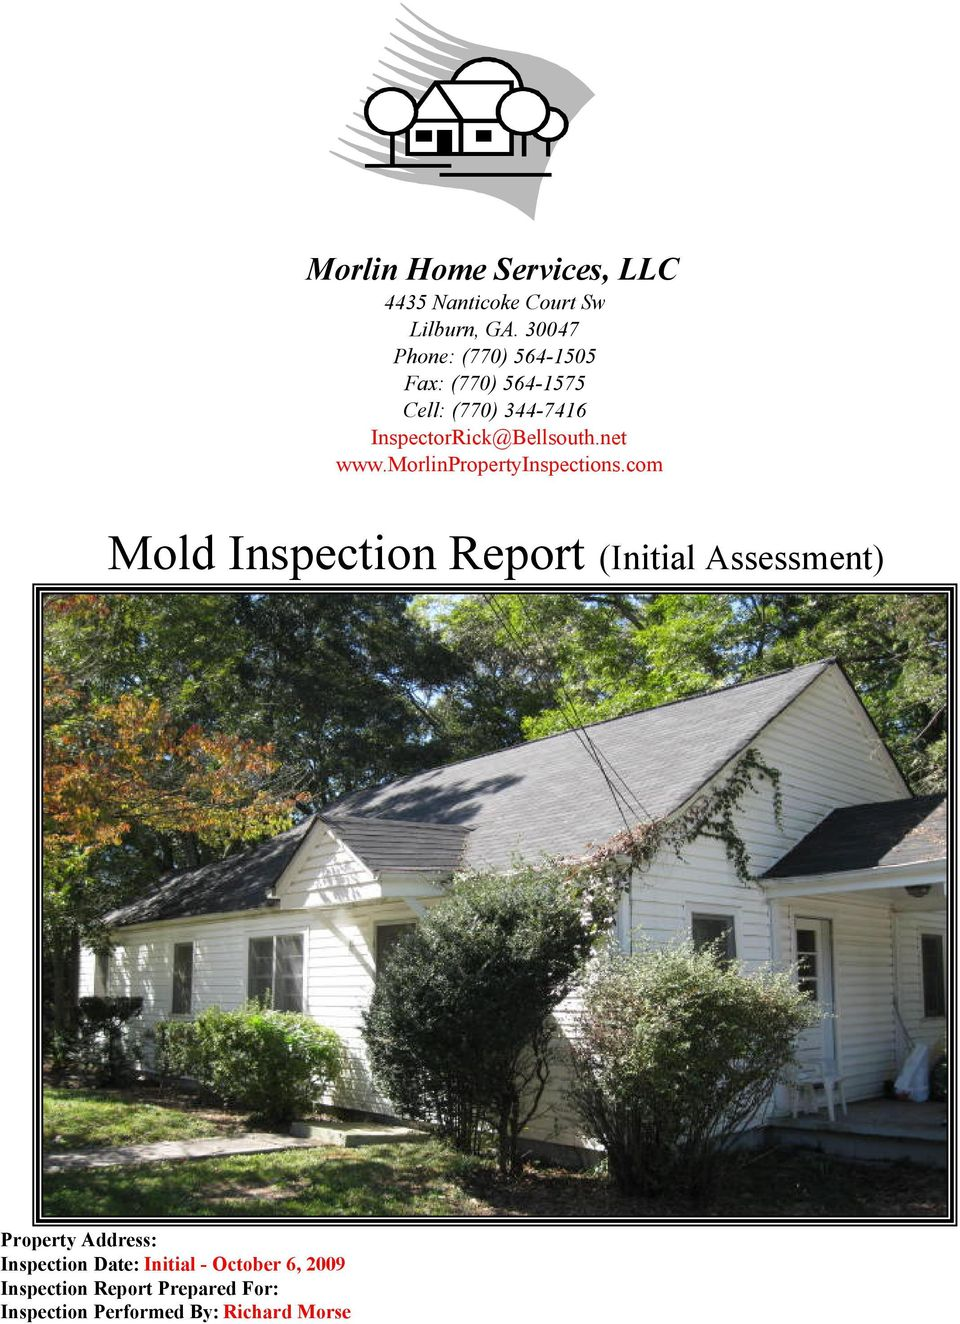 net www.morlinpropertyinspections.